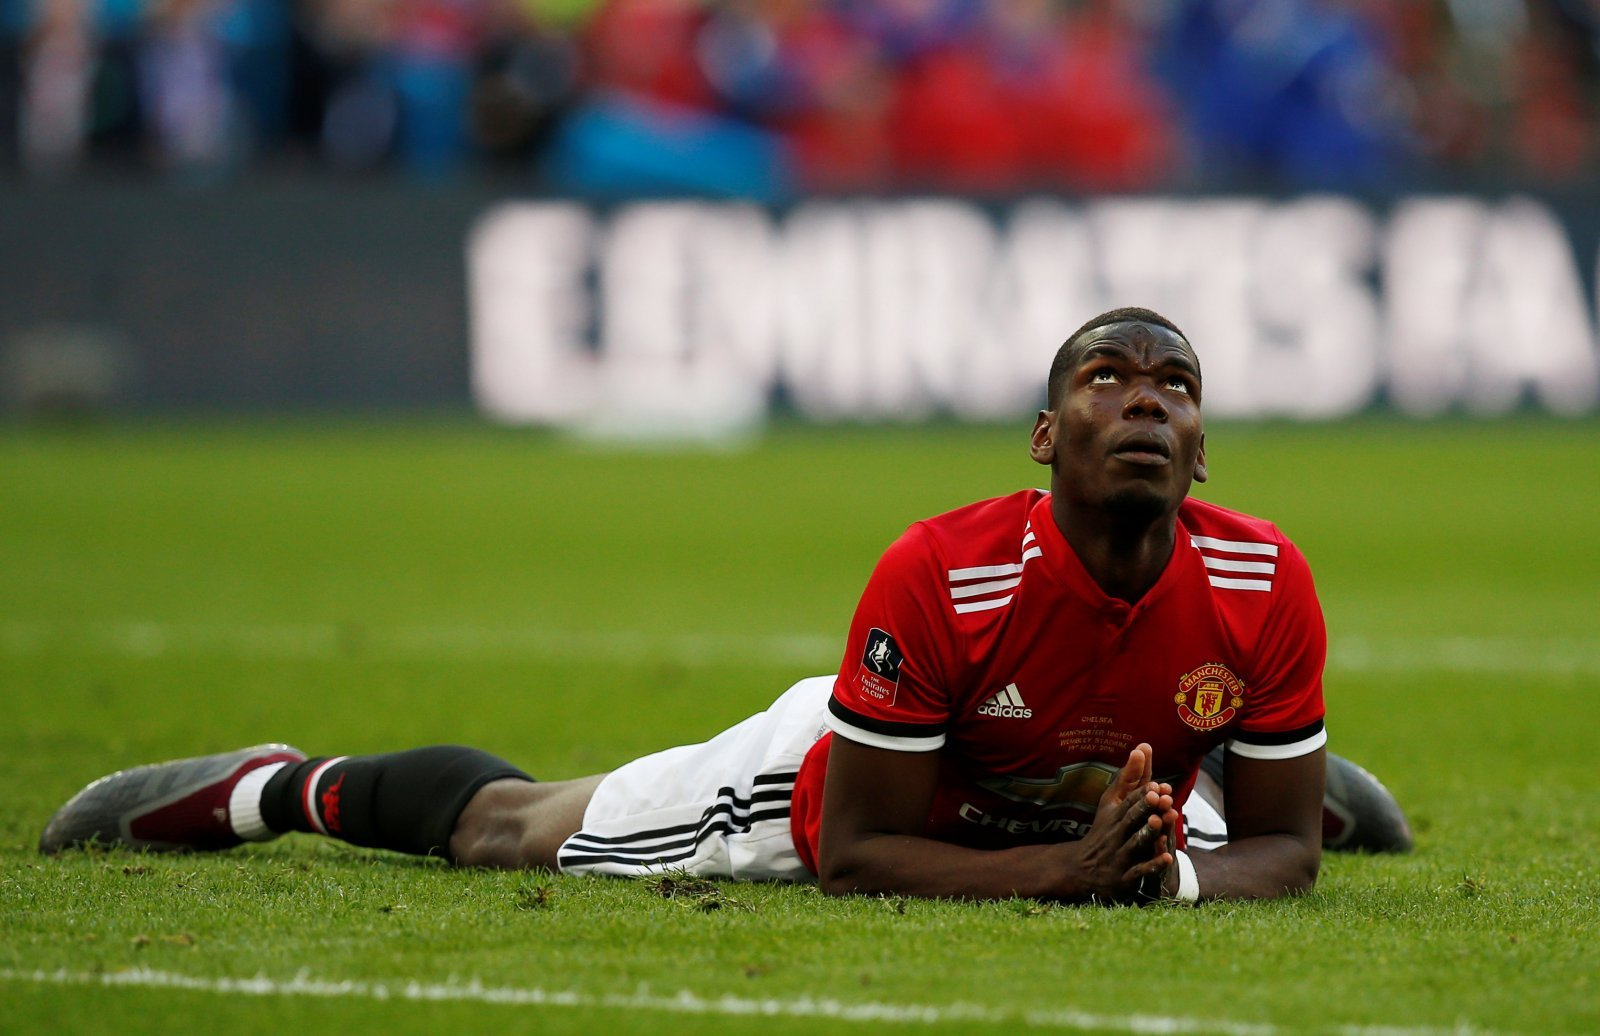 Manchester United should not stand in Pogba's way as he looks to force through move away